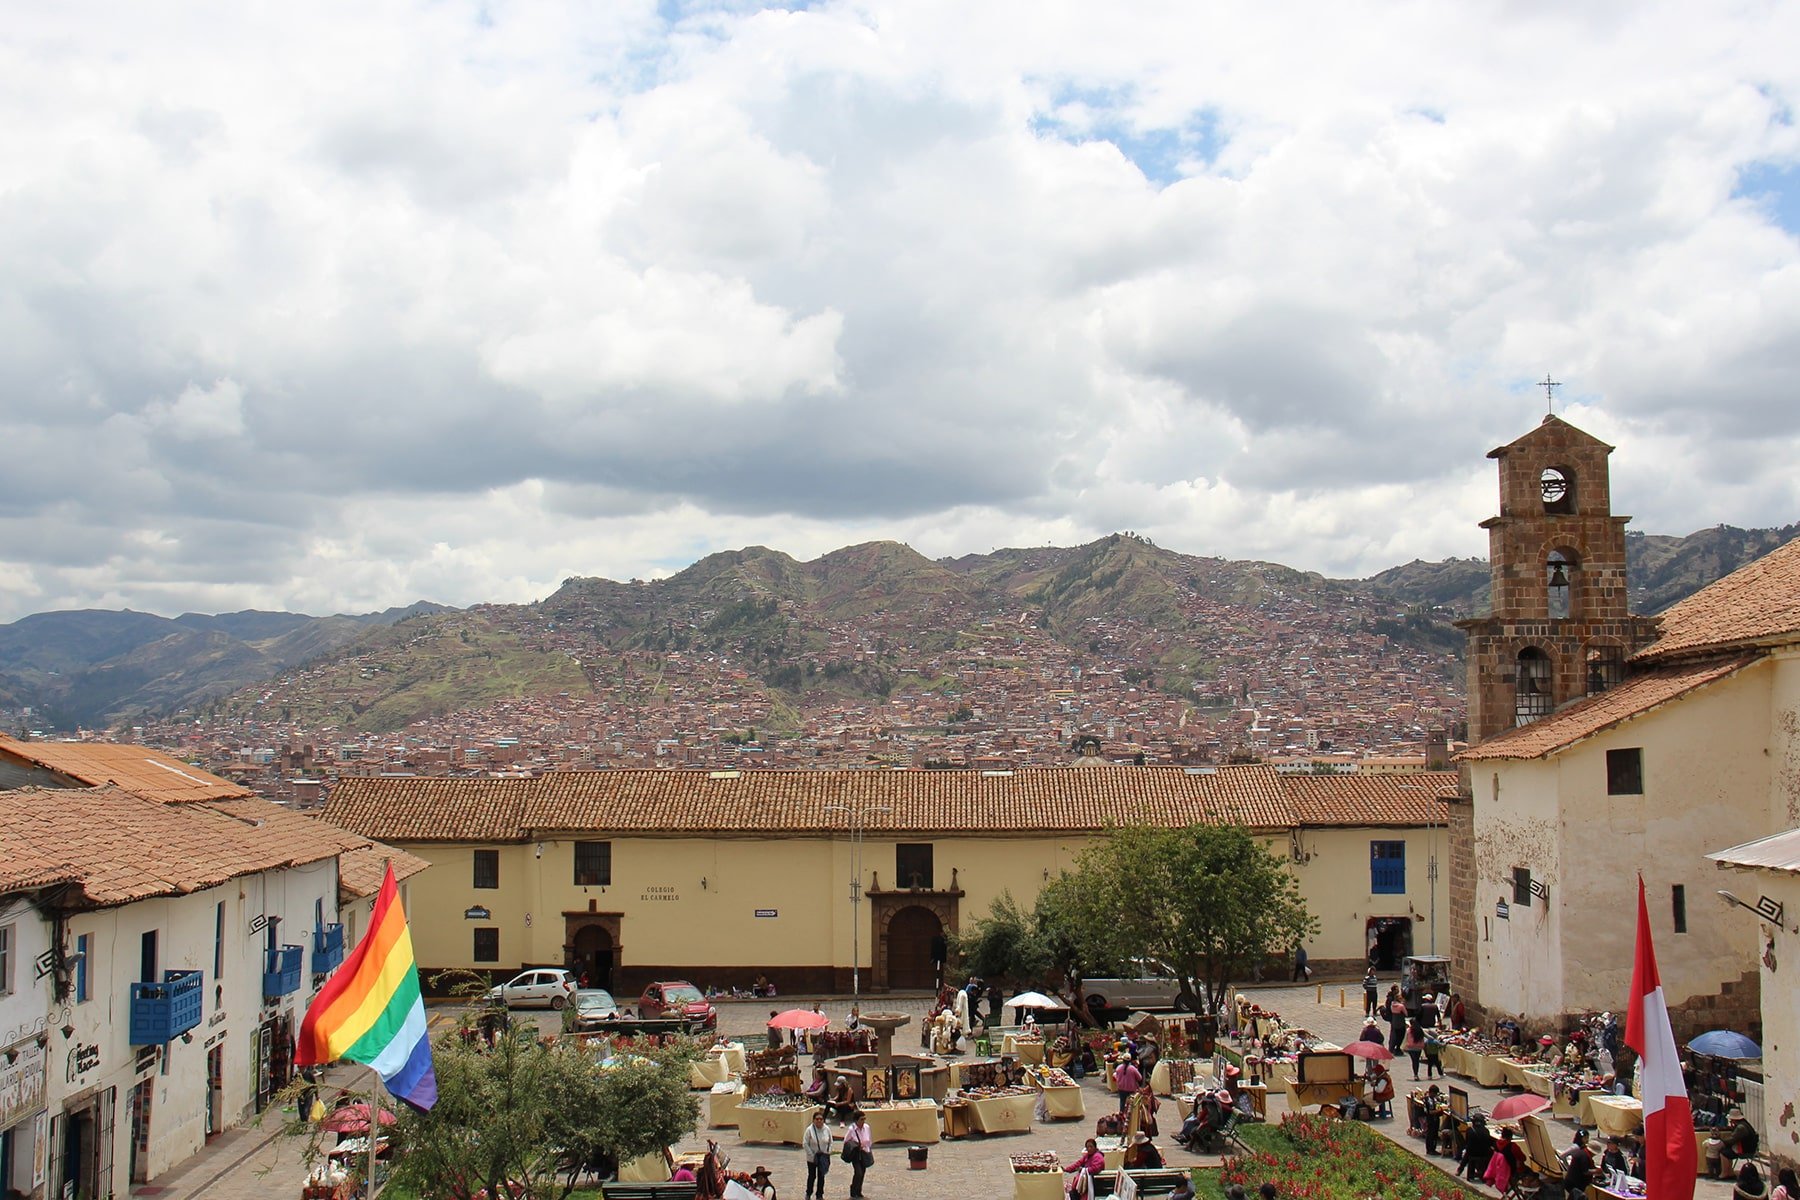 View from San Blas square